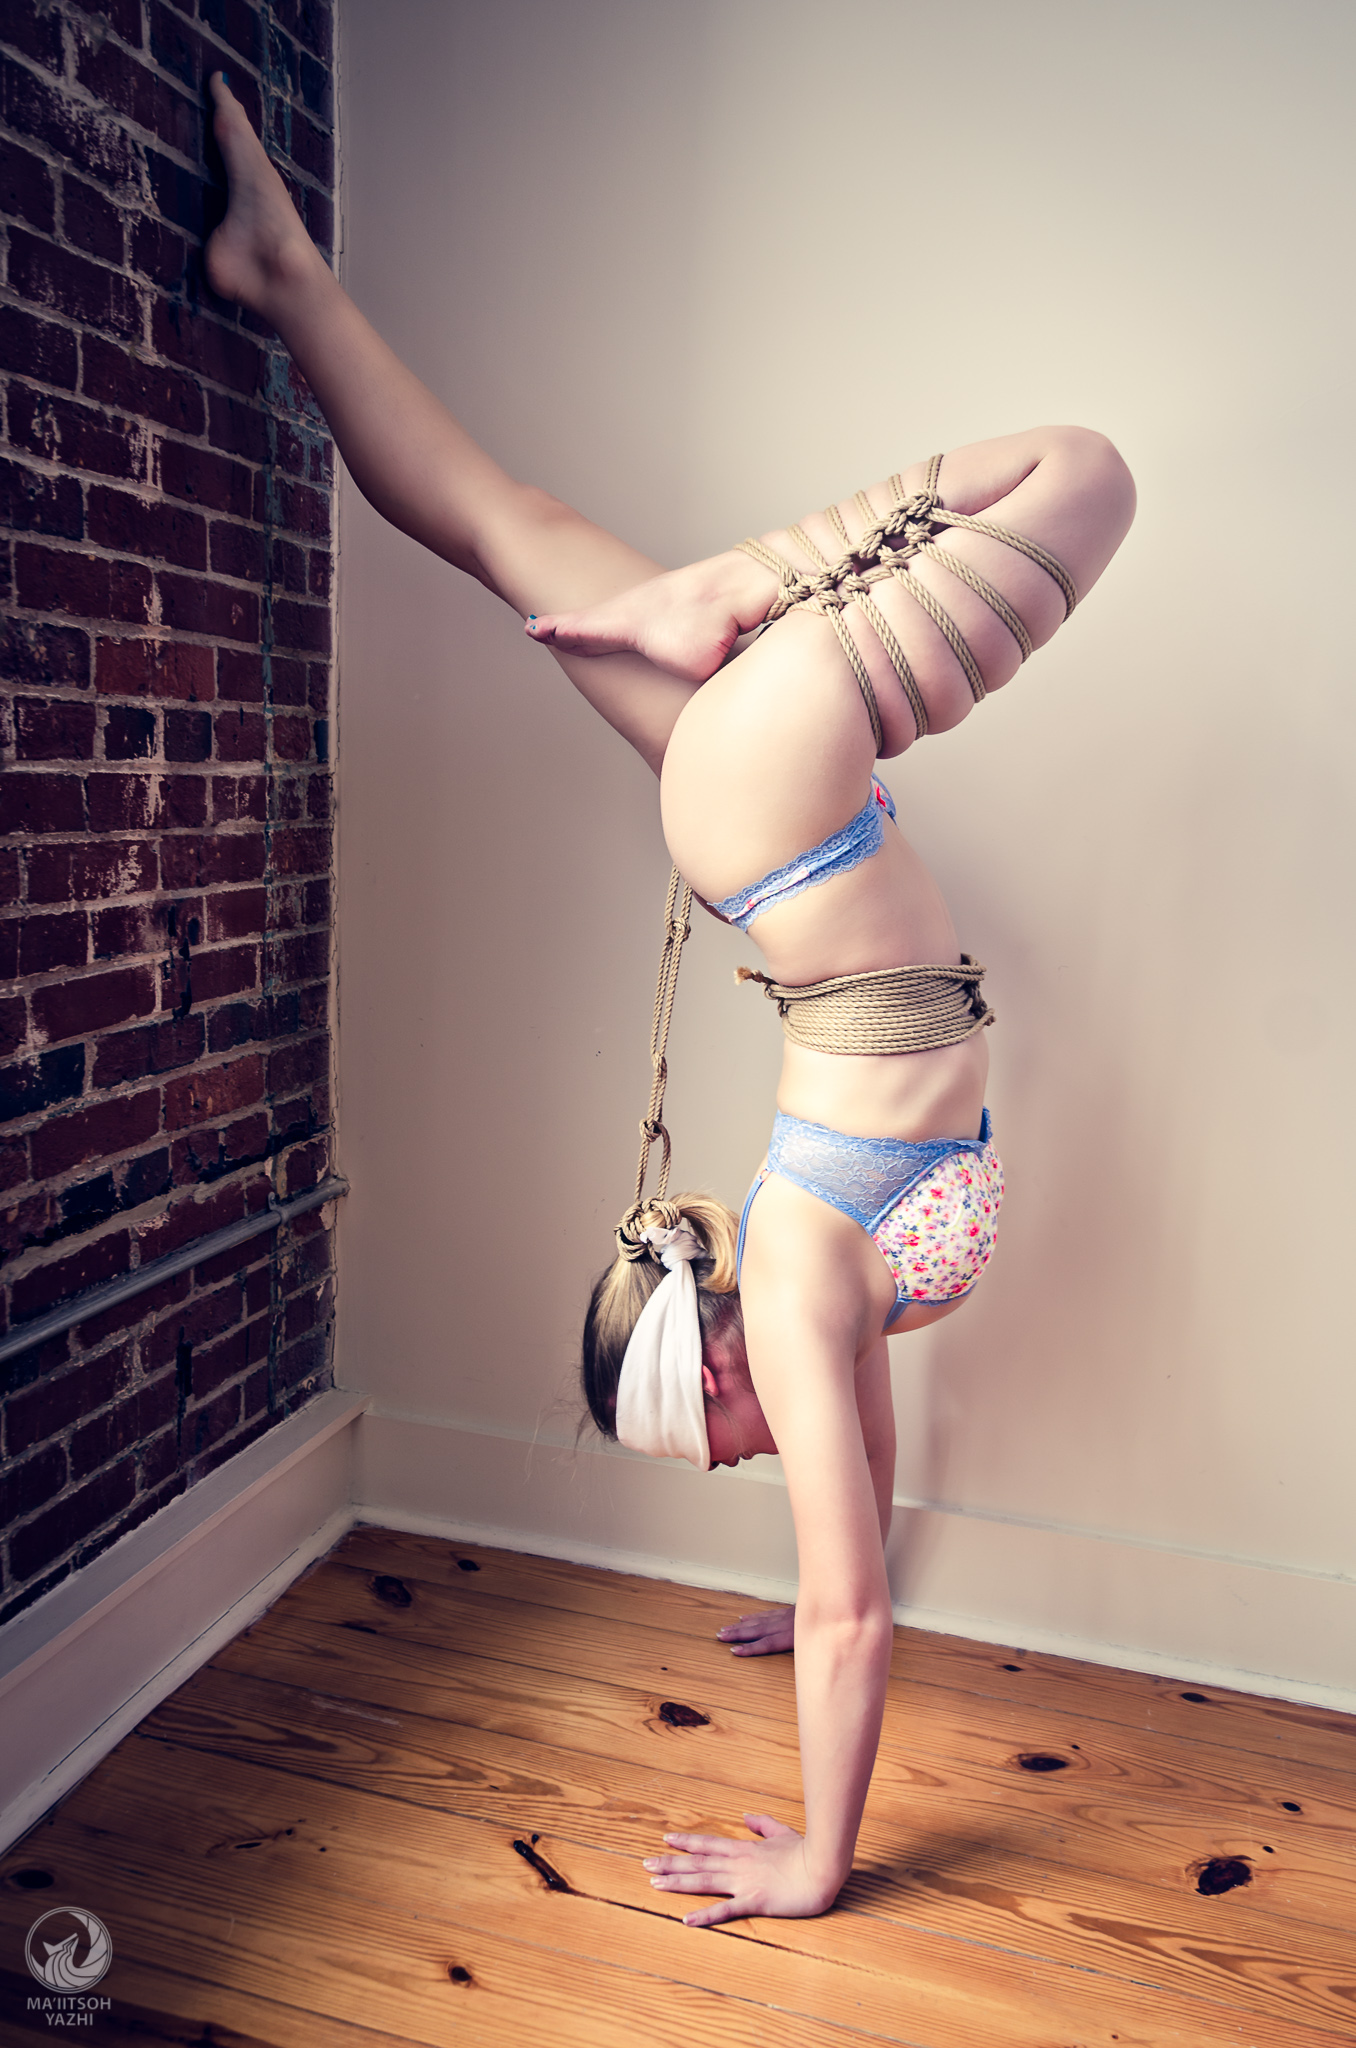 Handstand in Rope (Full Gallery)